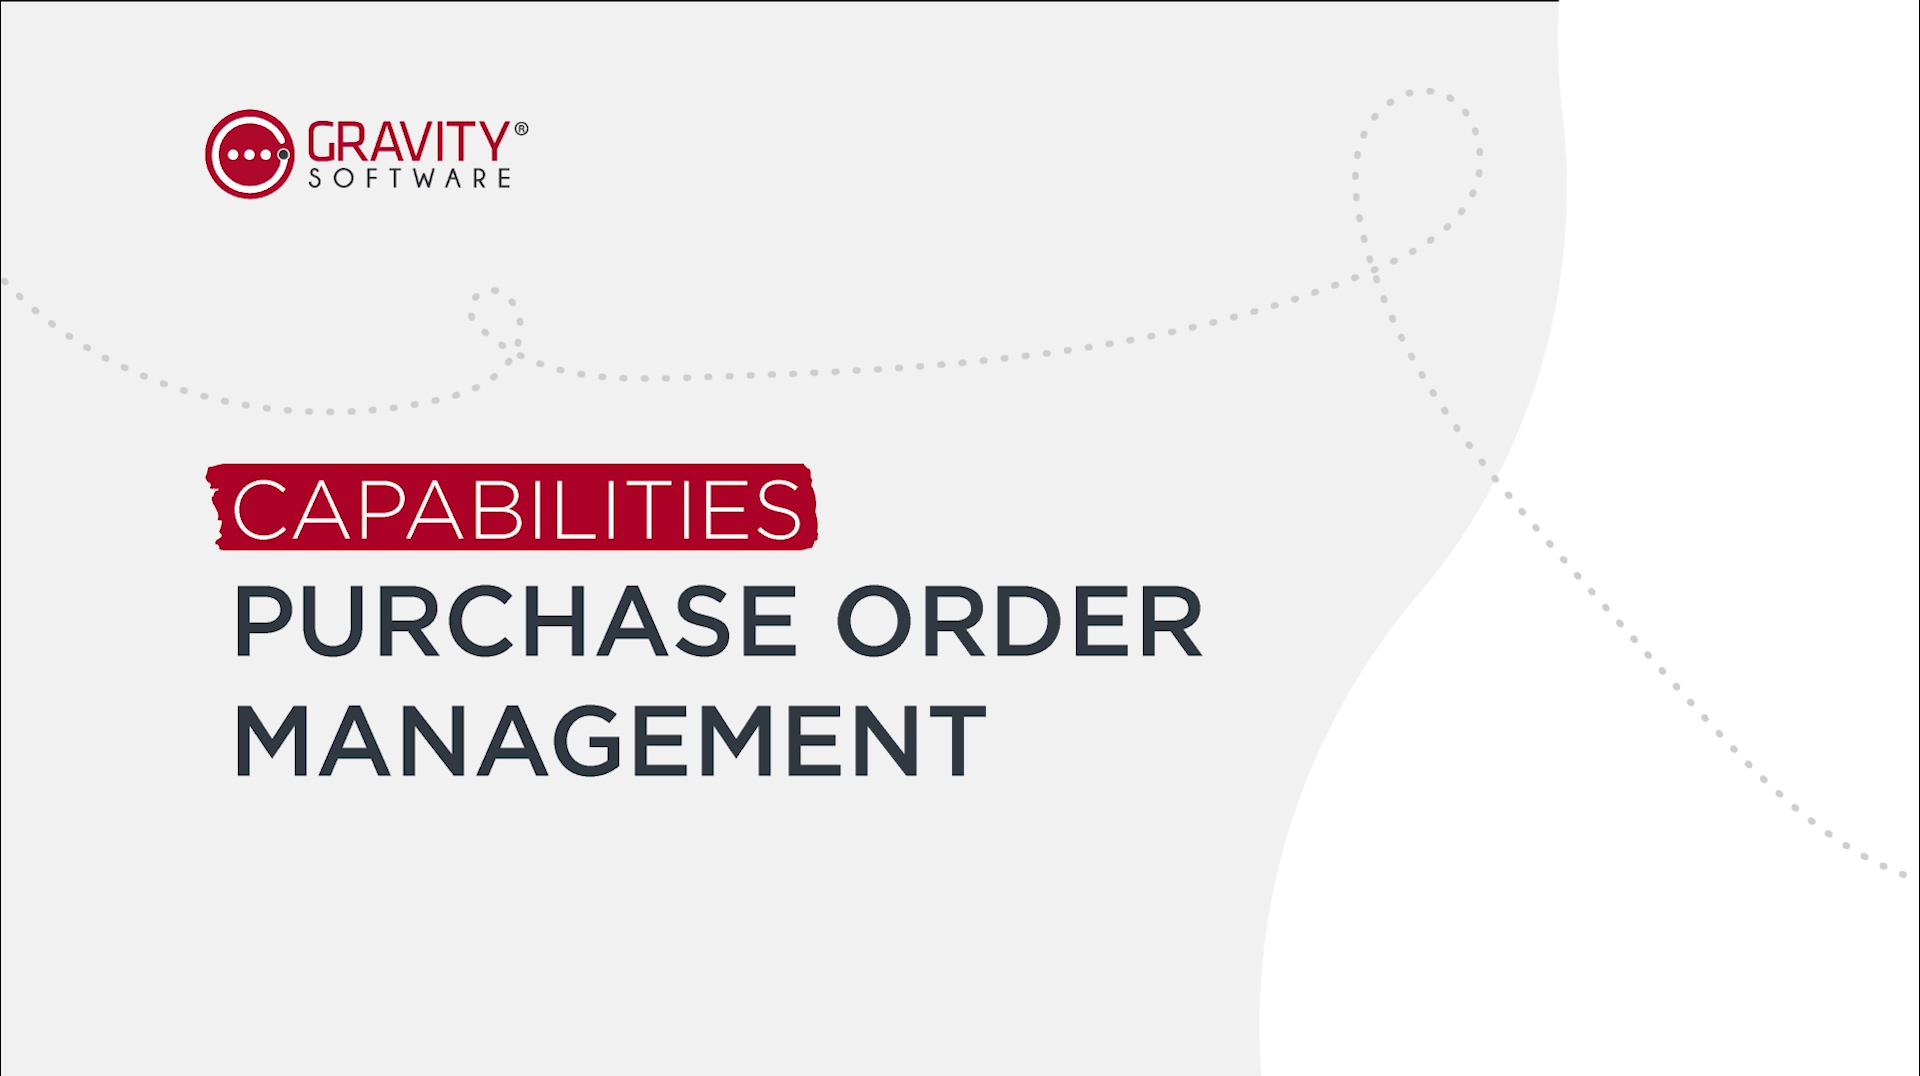 Gravity Software Purchase Order Management Capabilities